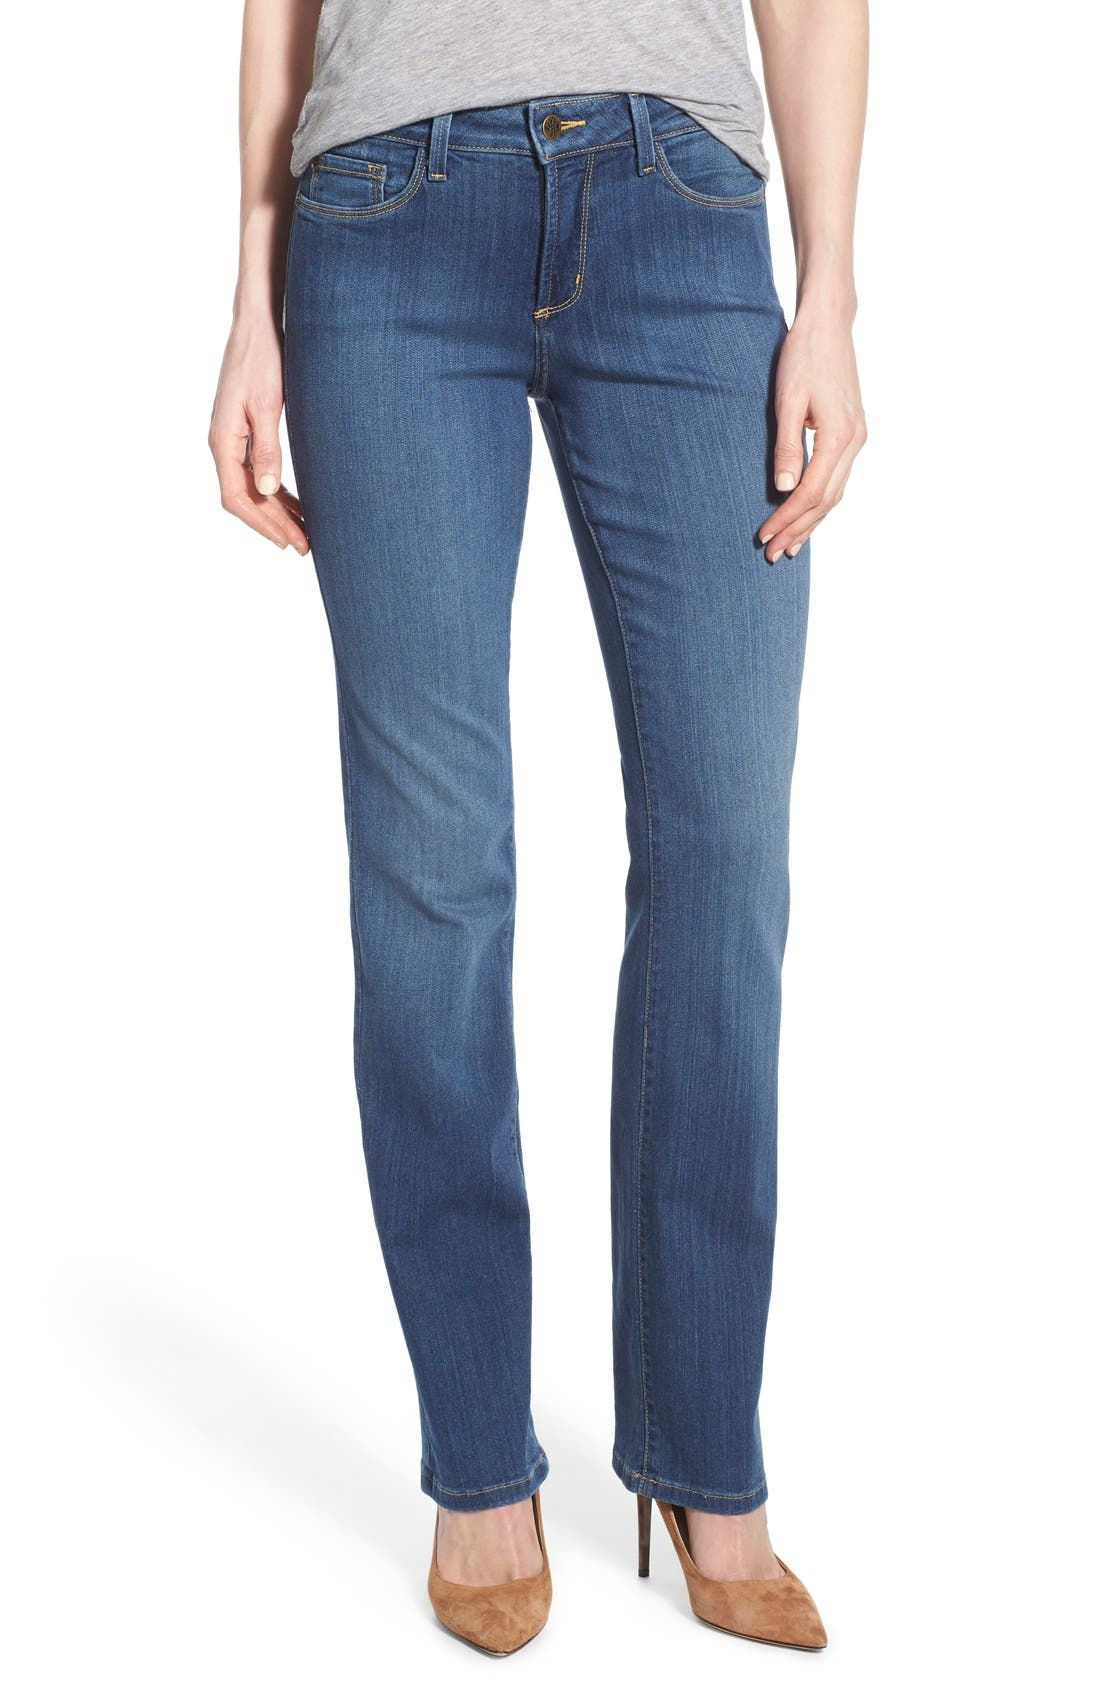 'Marilyn' Stretch Straight Leg Jeans,                         Main,                         color, Anderson